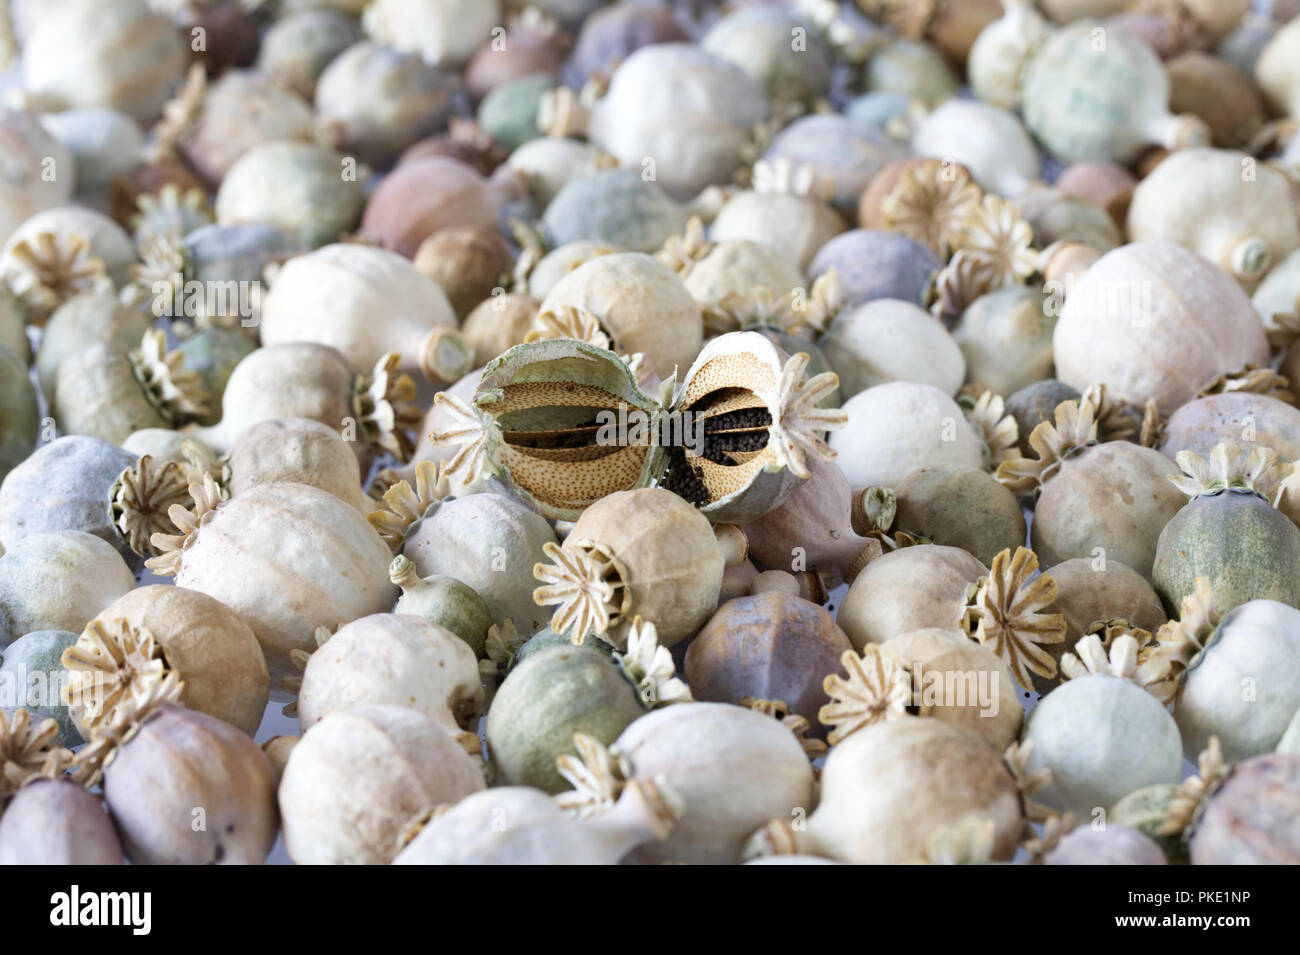 Cross section of a poppy seedhead. - Stock Image